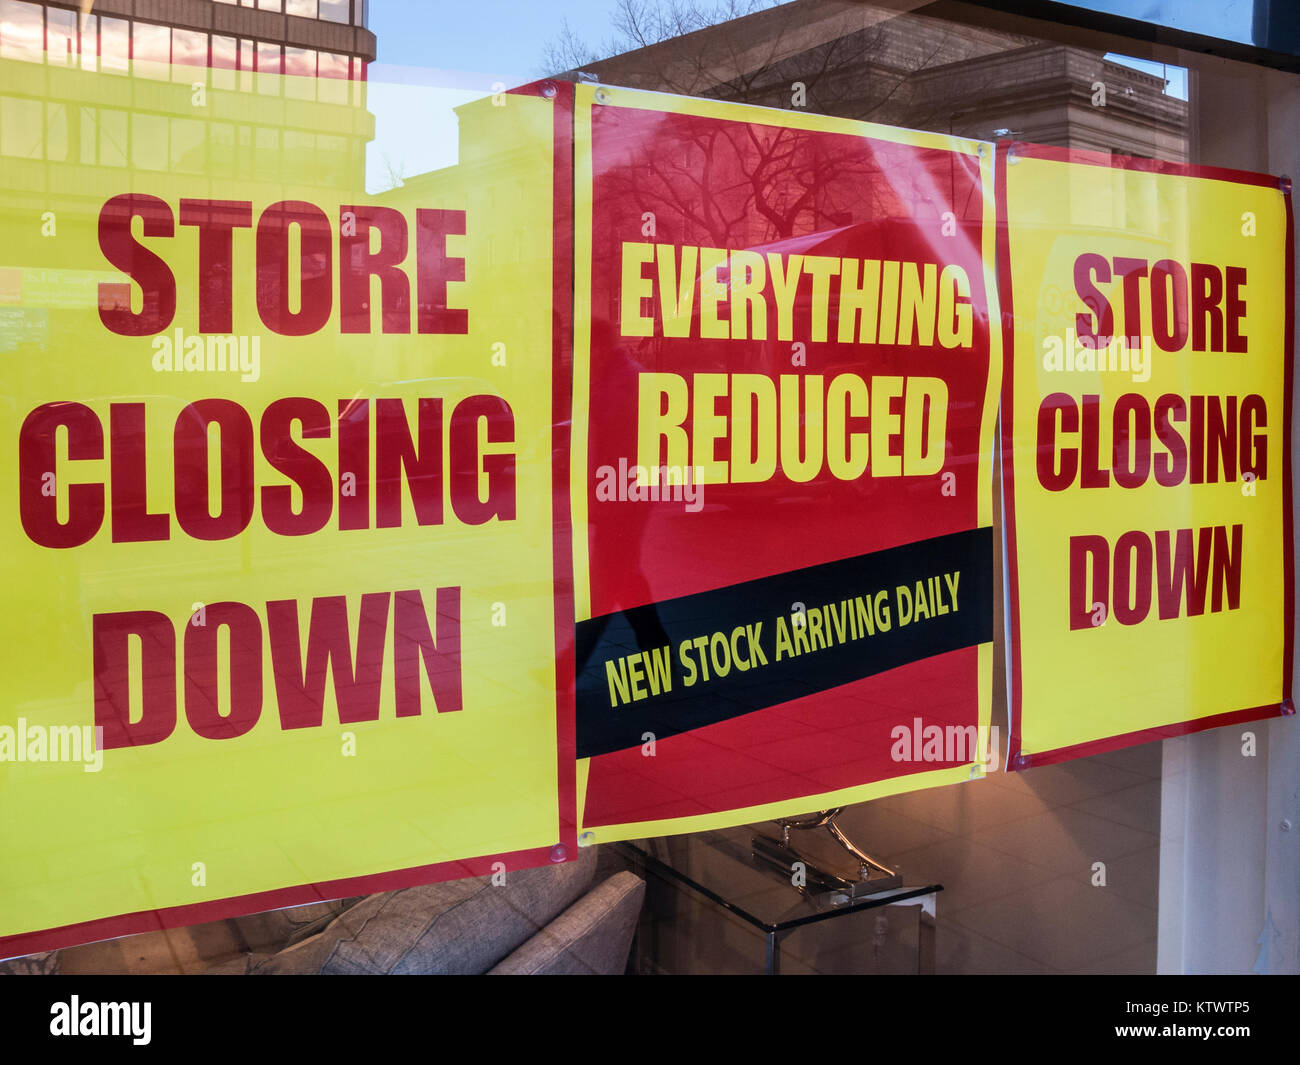 Store Closing Down, shop window poster - Stock Image